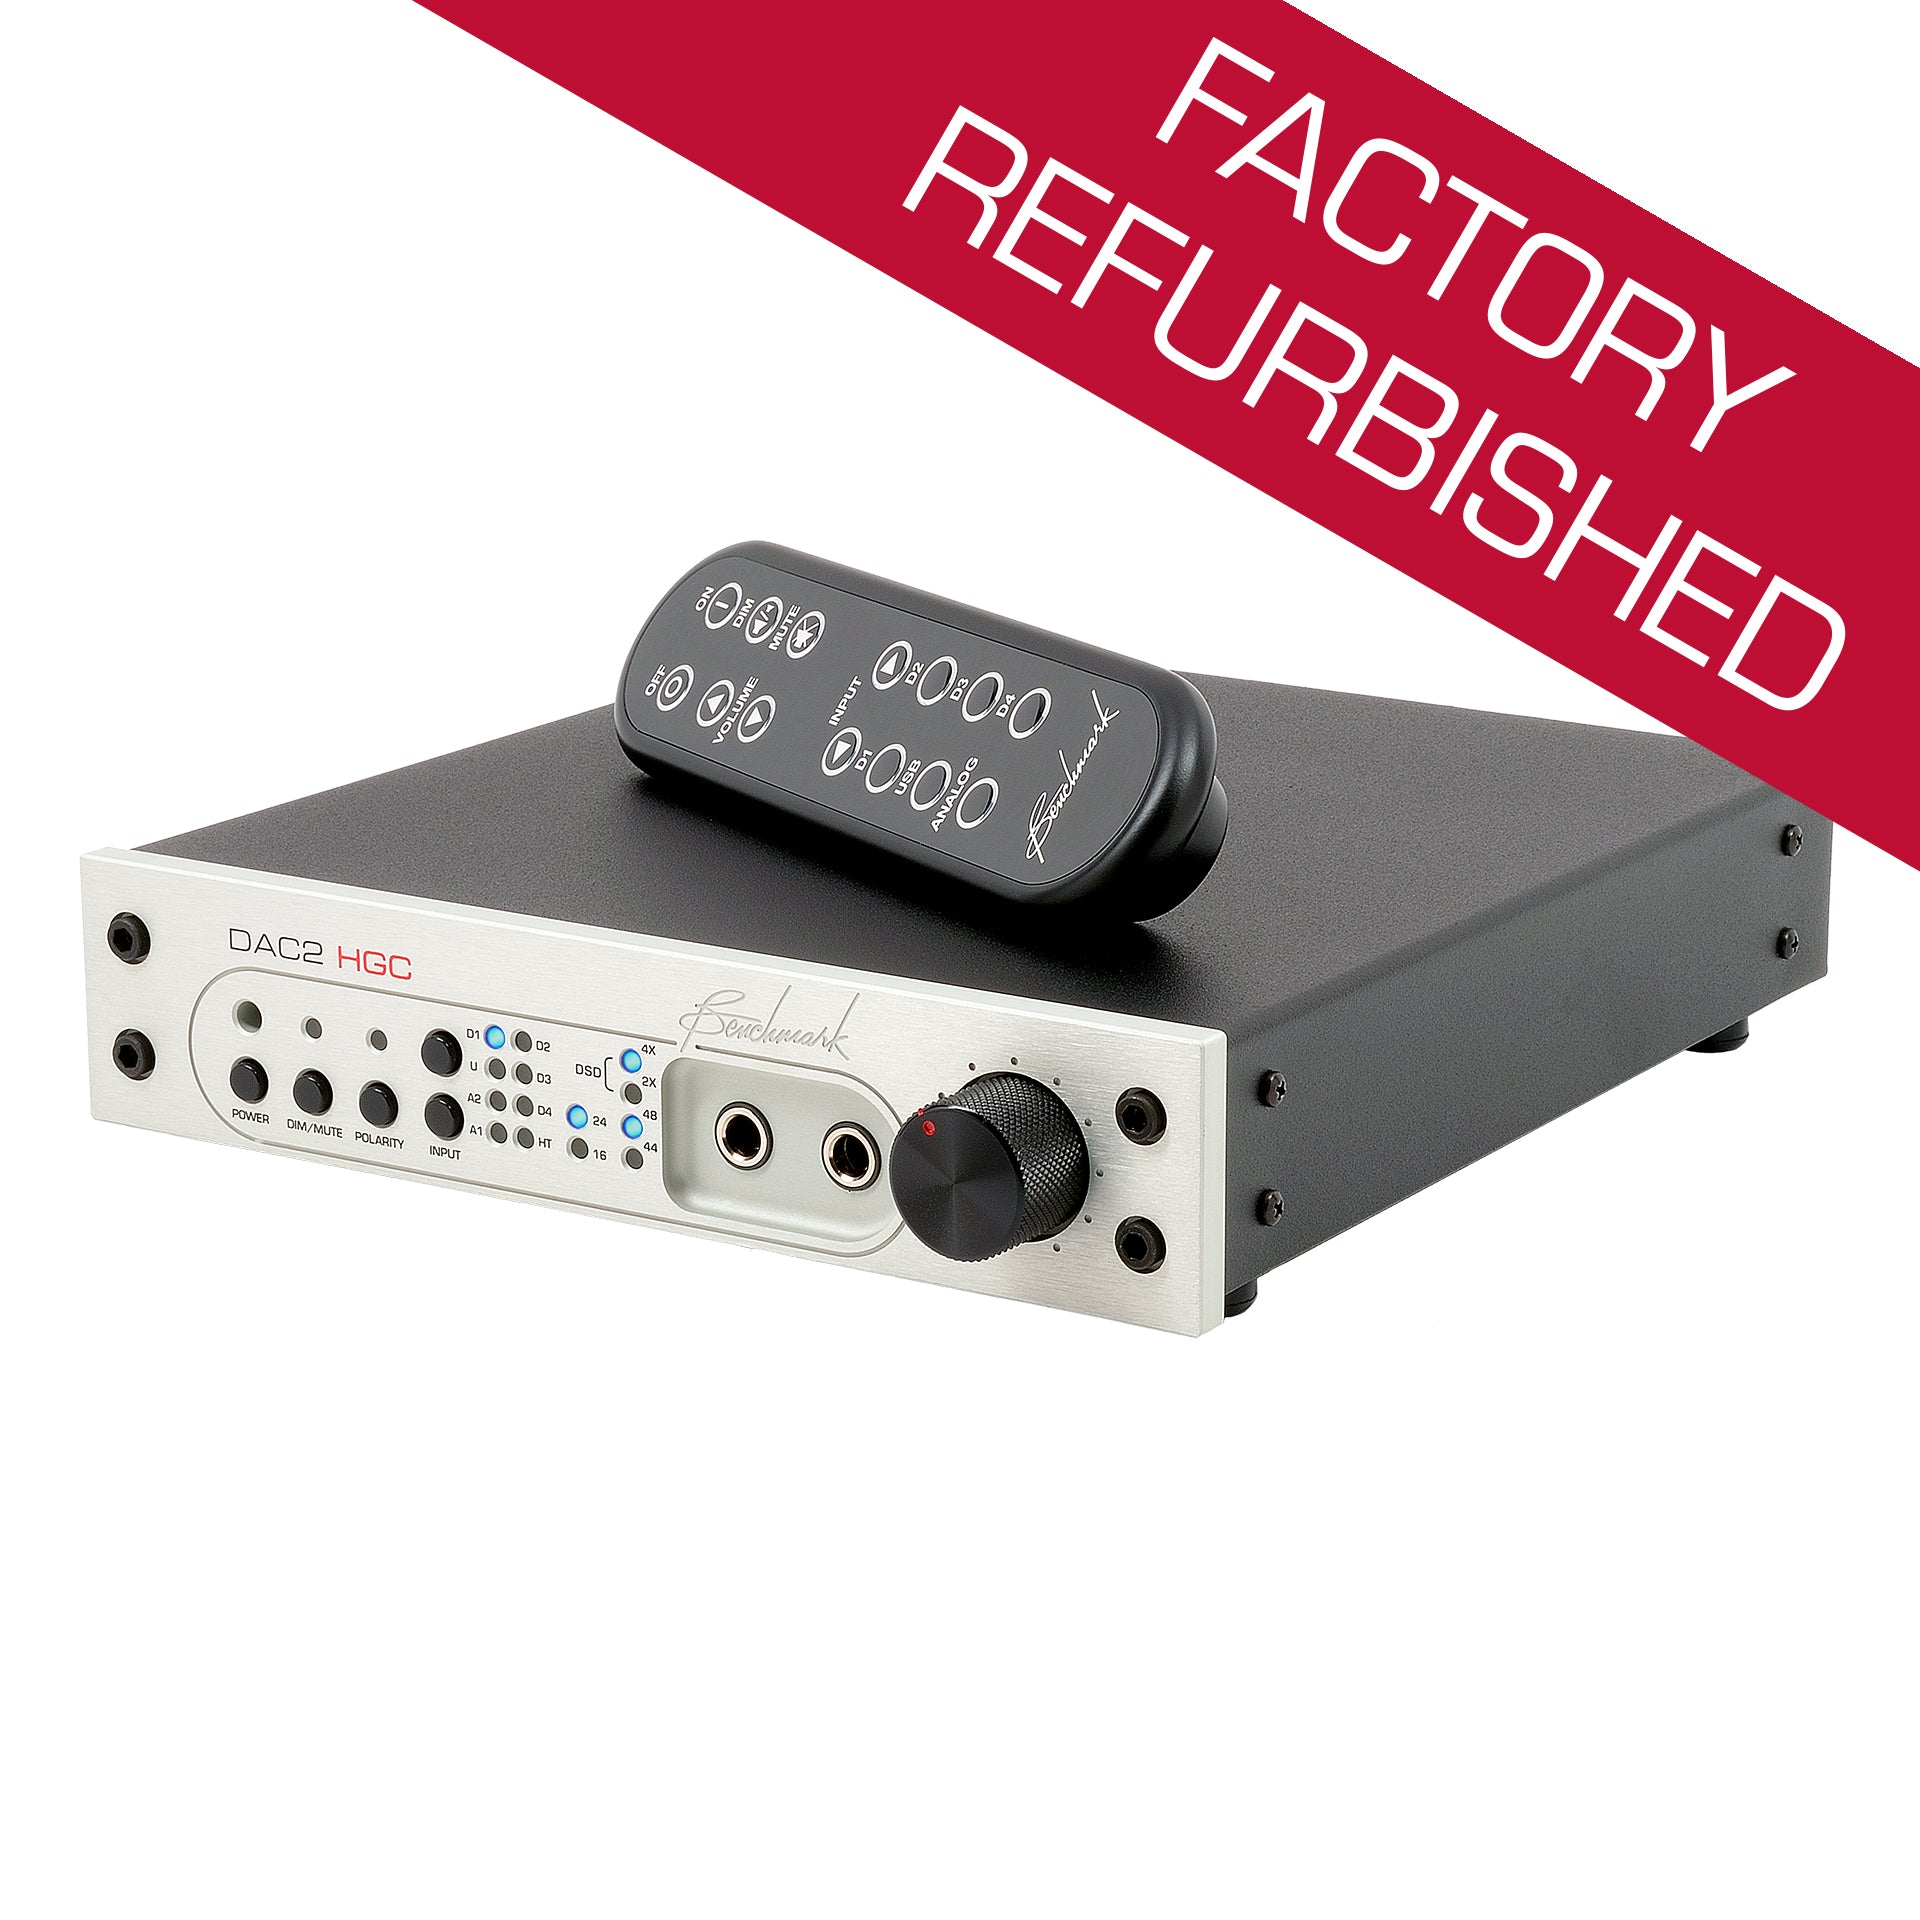 Benchmark DAC2 HGC - Digital to Analog Audio Converter - Factory Refurbished